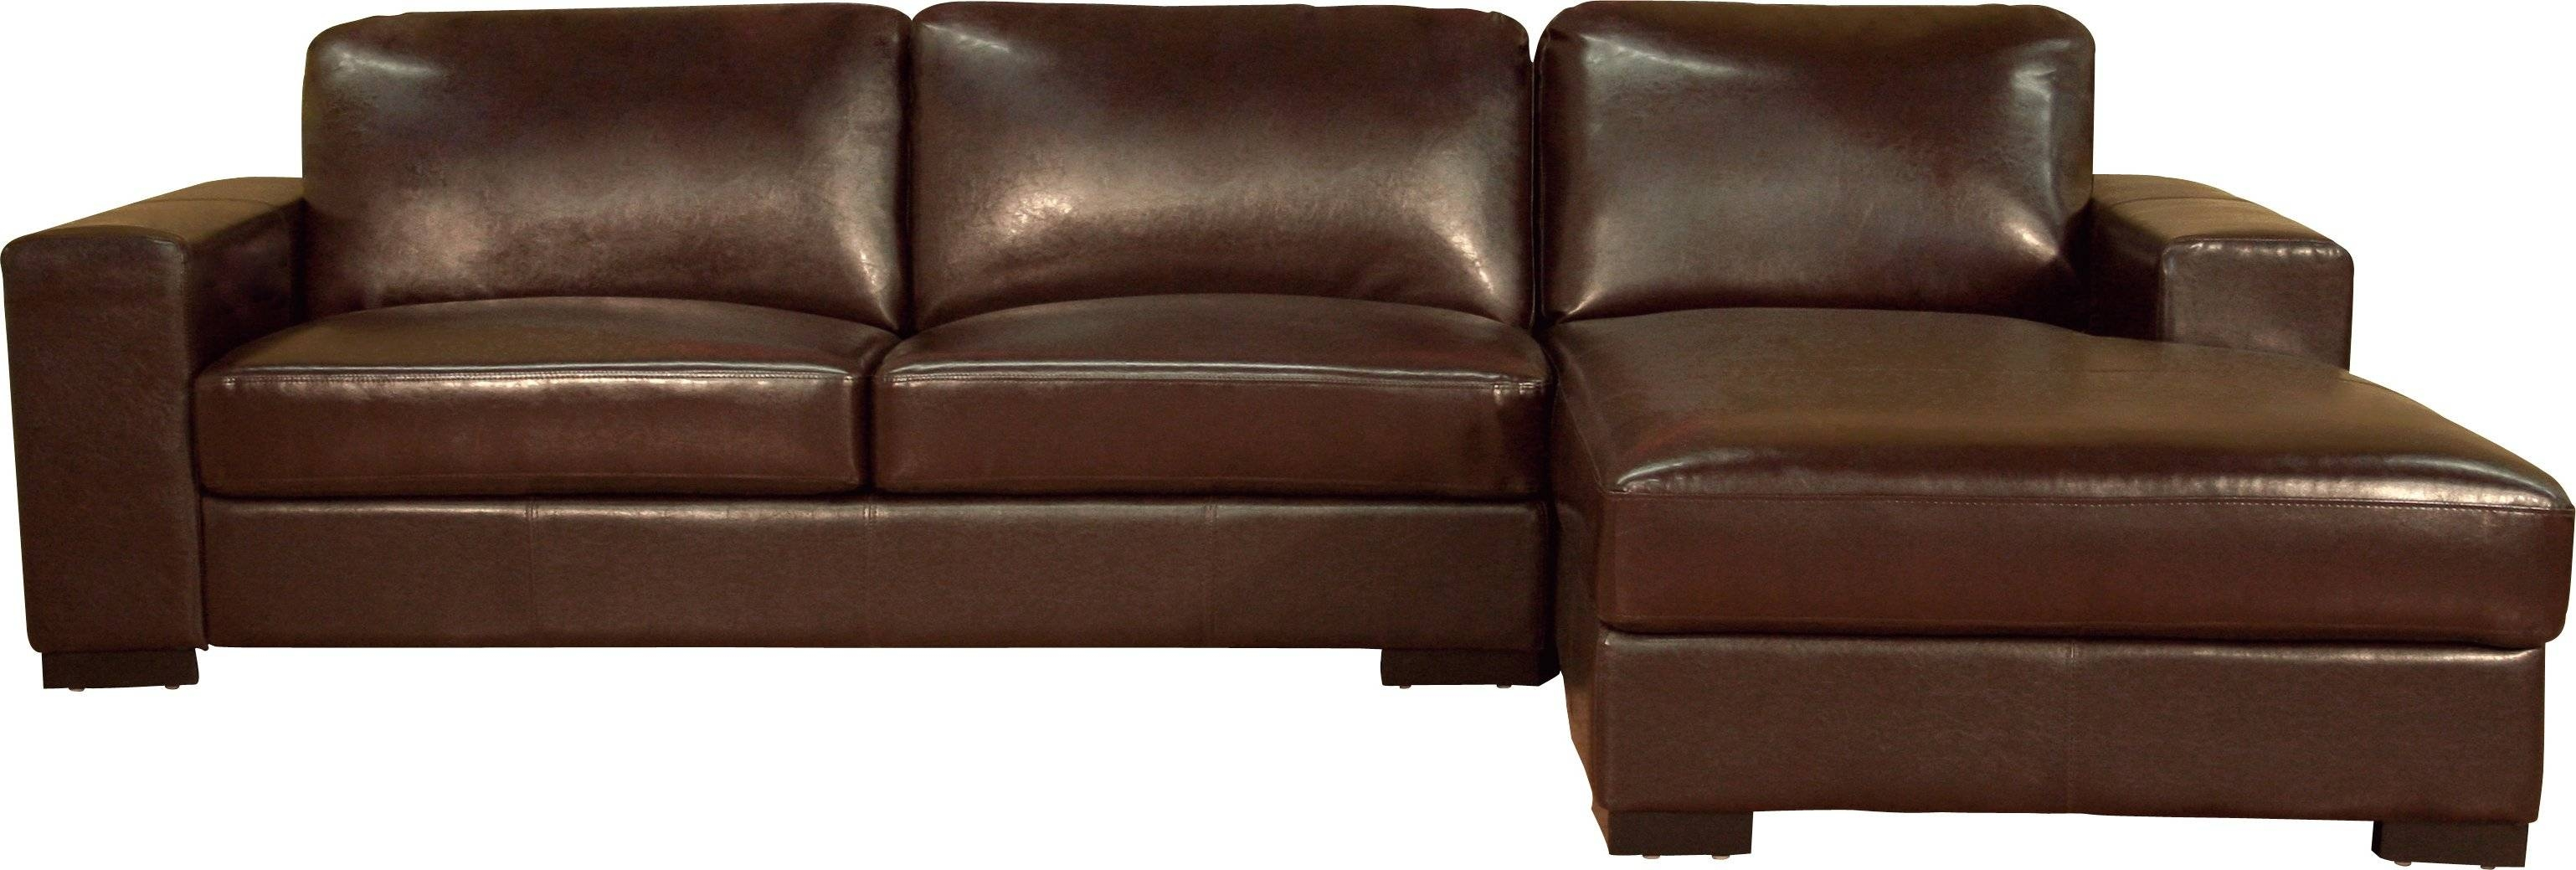 Leather Sofas With Chaise And Furniture Living Room Brown Leather pertaining to Leather Lounge Sofas (Image 19 of 30)